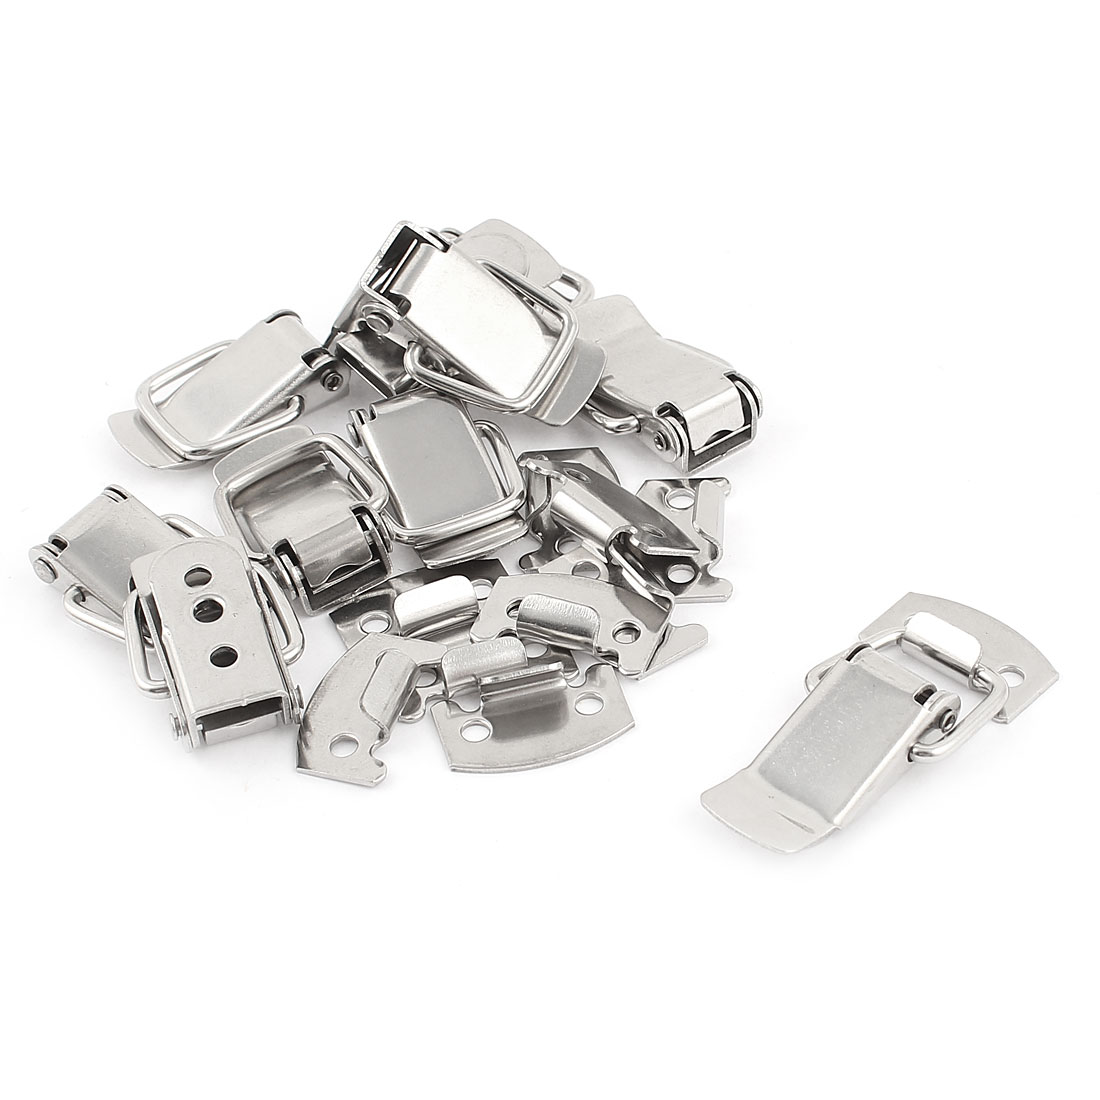 10 Pcs Toolbox Case Hardware 40mm Long Stainless Steel Toggle Latch Catch